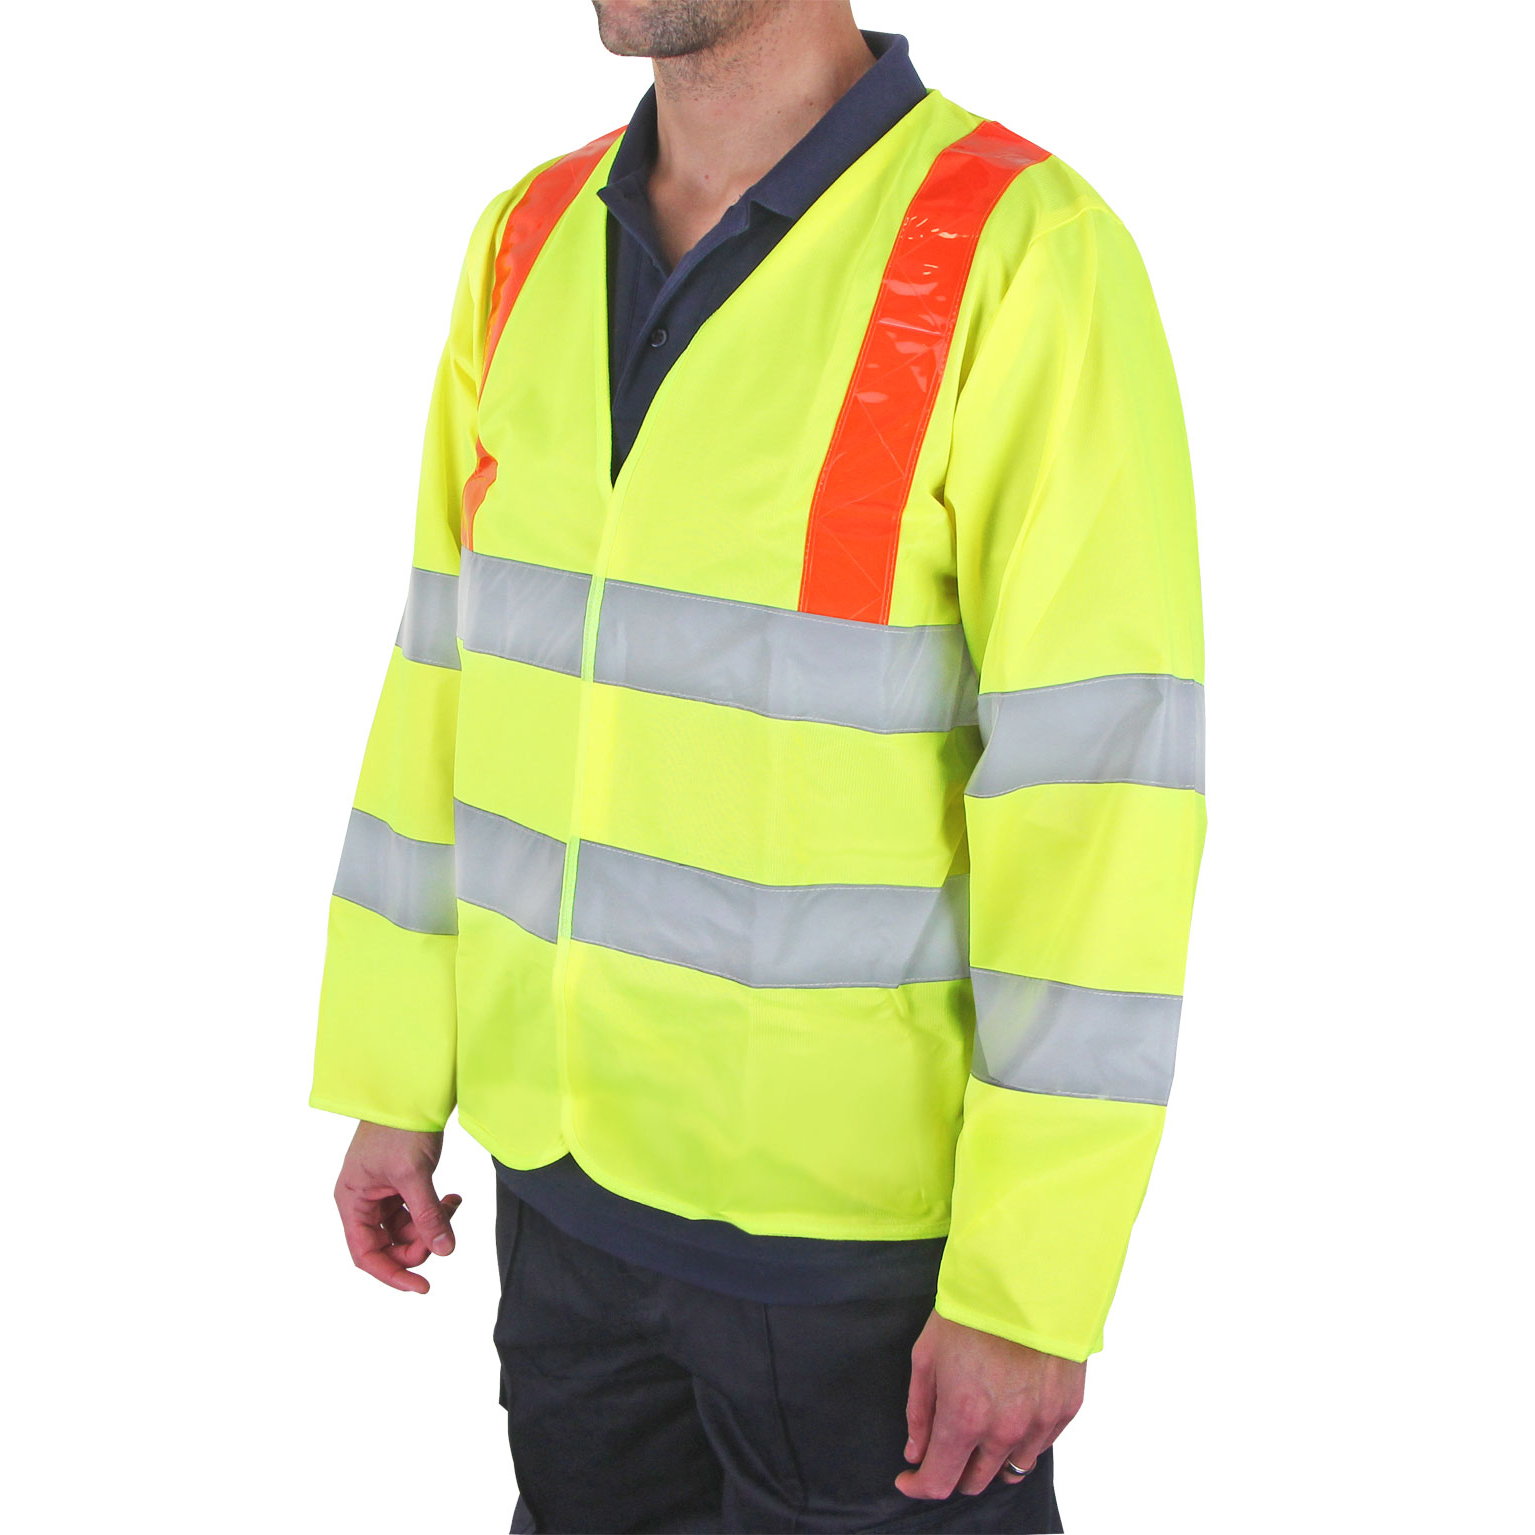 B-Seen High Visibility Long Sleeved Jerkin 2XL Saturn Yellow/Red Ref PKJENG(RT)XXL *Up to 3 Day Leadtime*